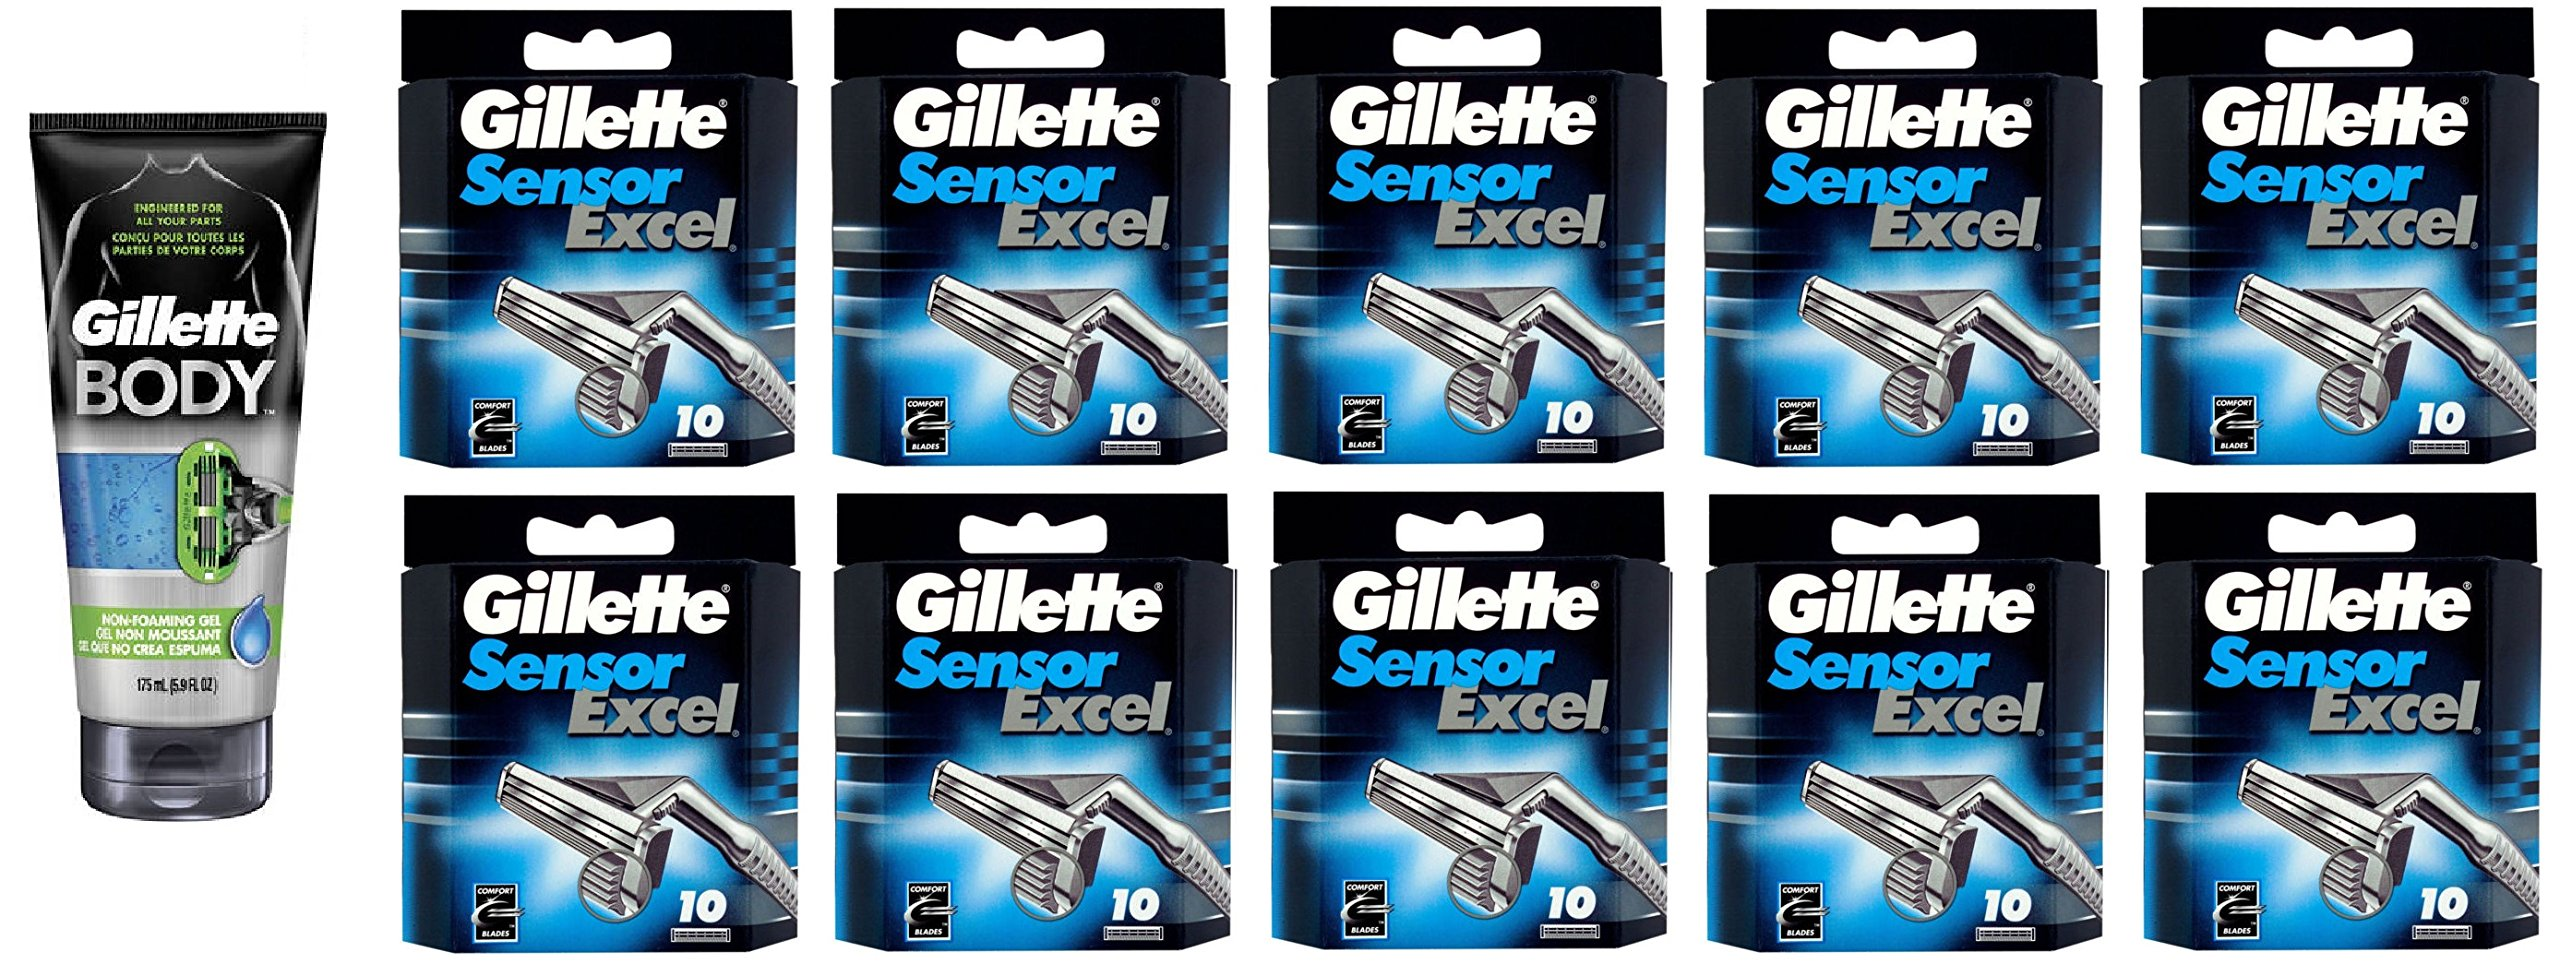 Gillette Body Non Foaming Shave Gel for Men, 5.9 Fl Oz + Sensor Excel Refill Blades 10 Ct. (10 Pack) + FREE Travel Toothbrush, Color May Vary